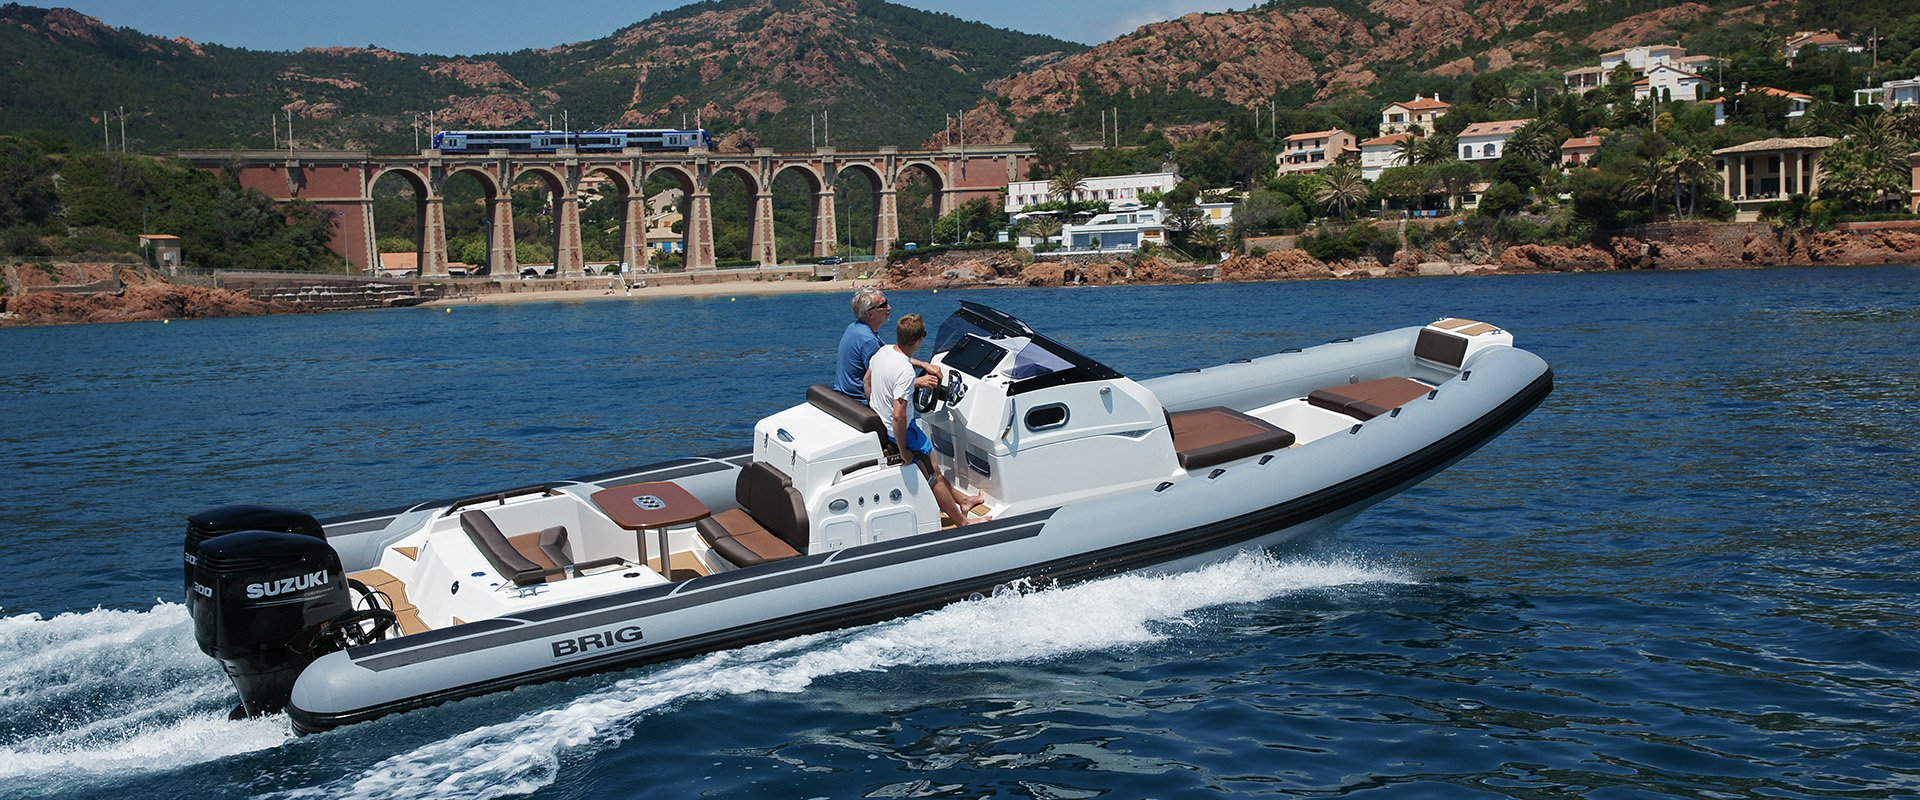 Eagle 10 Luxury Boat